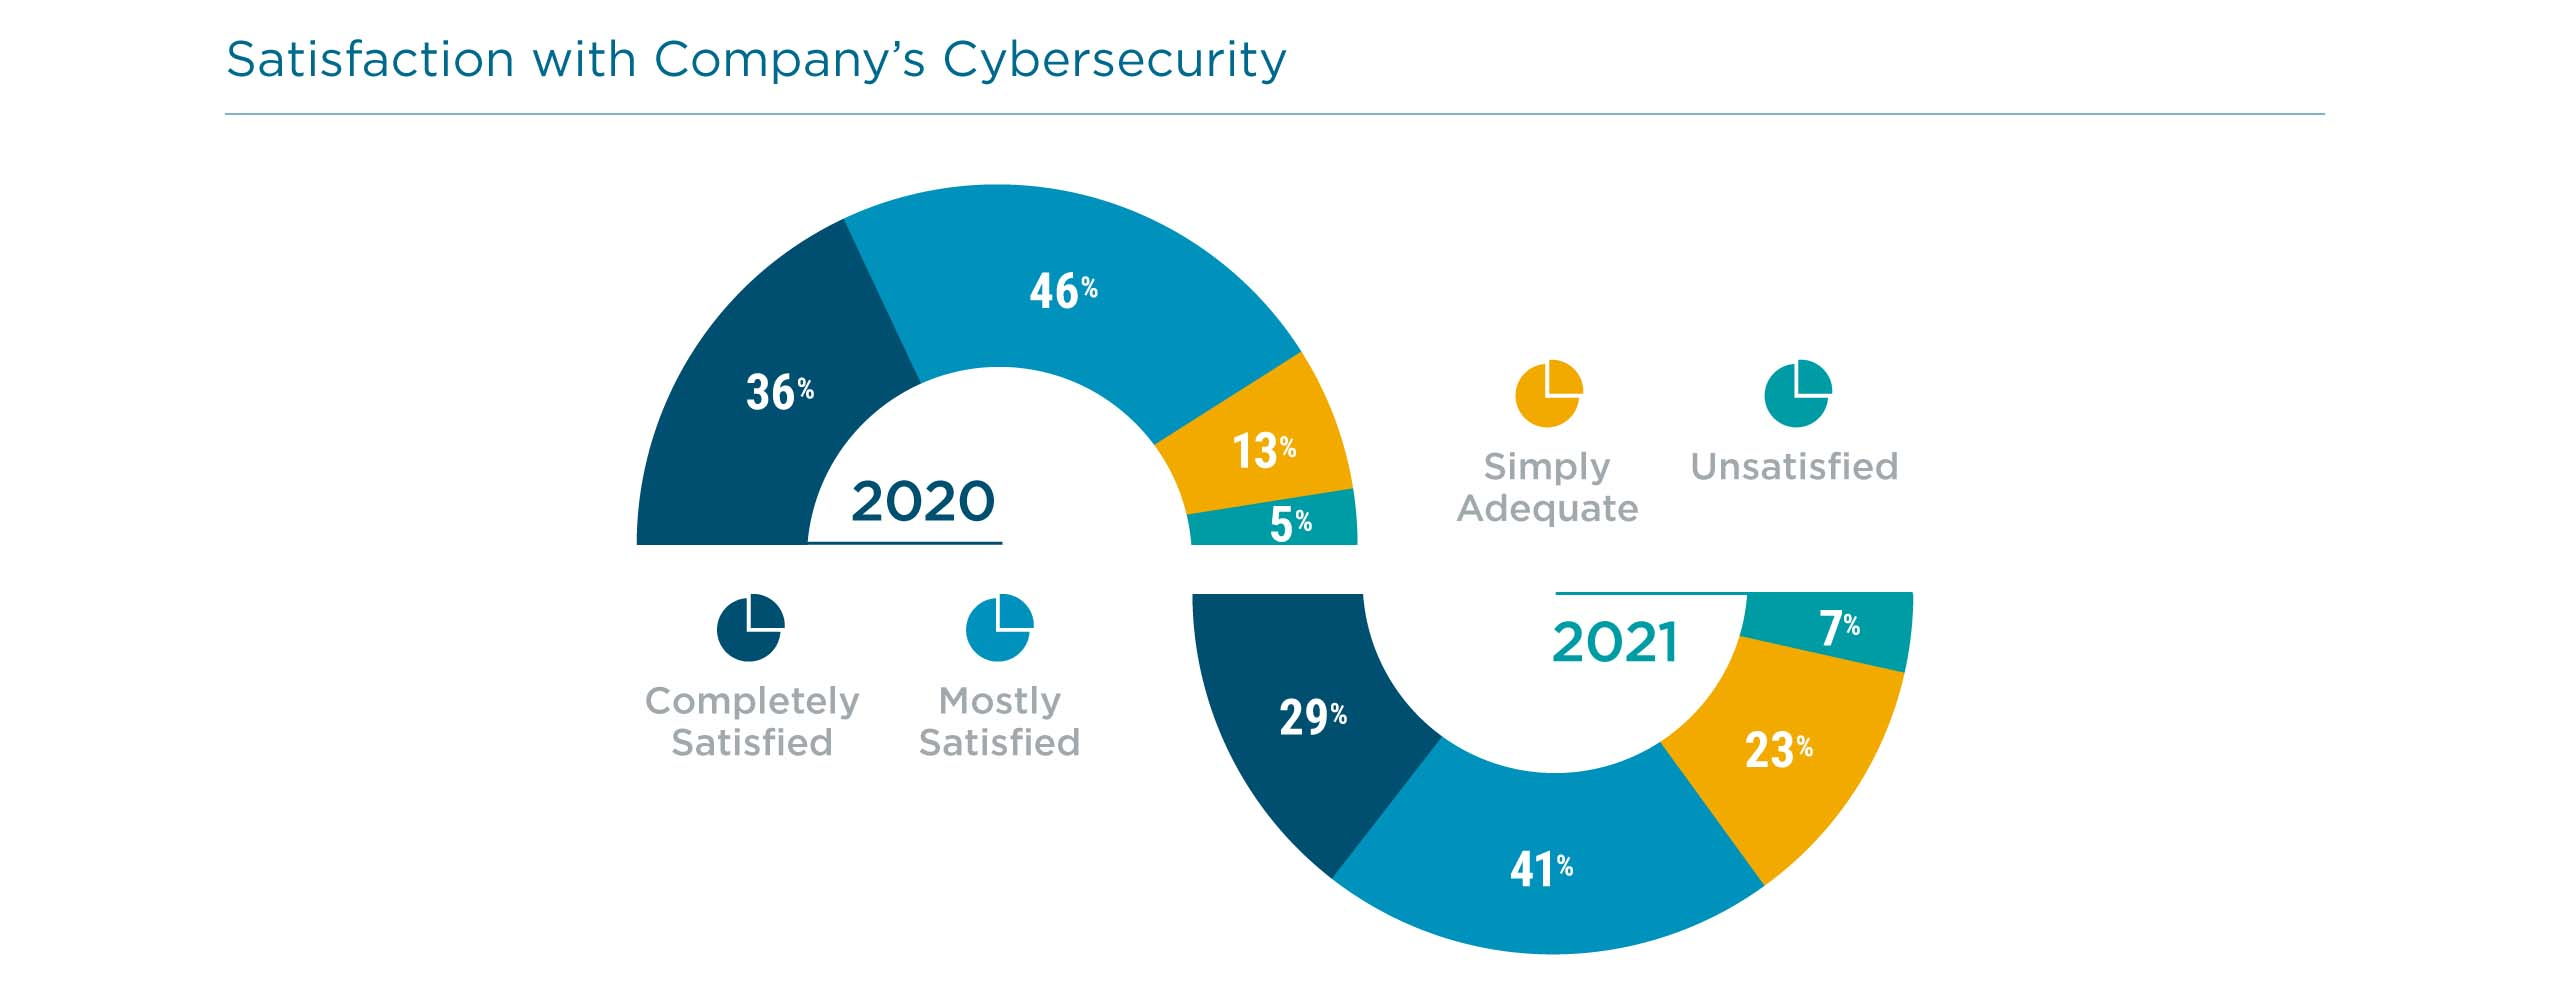 Satisfaction with Company's Cybersecurity